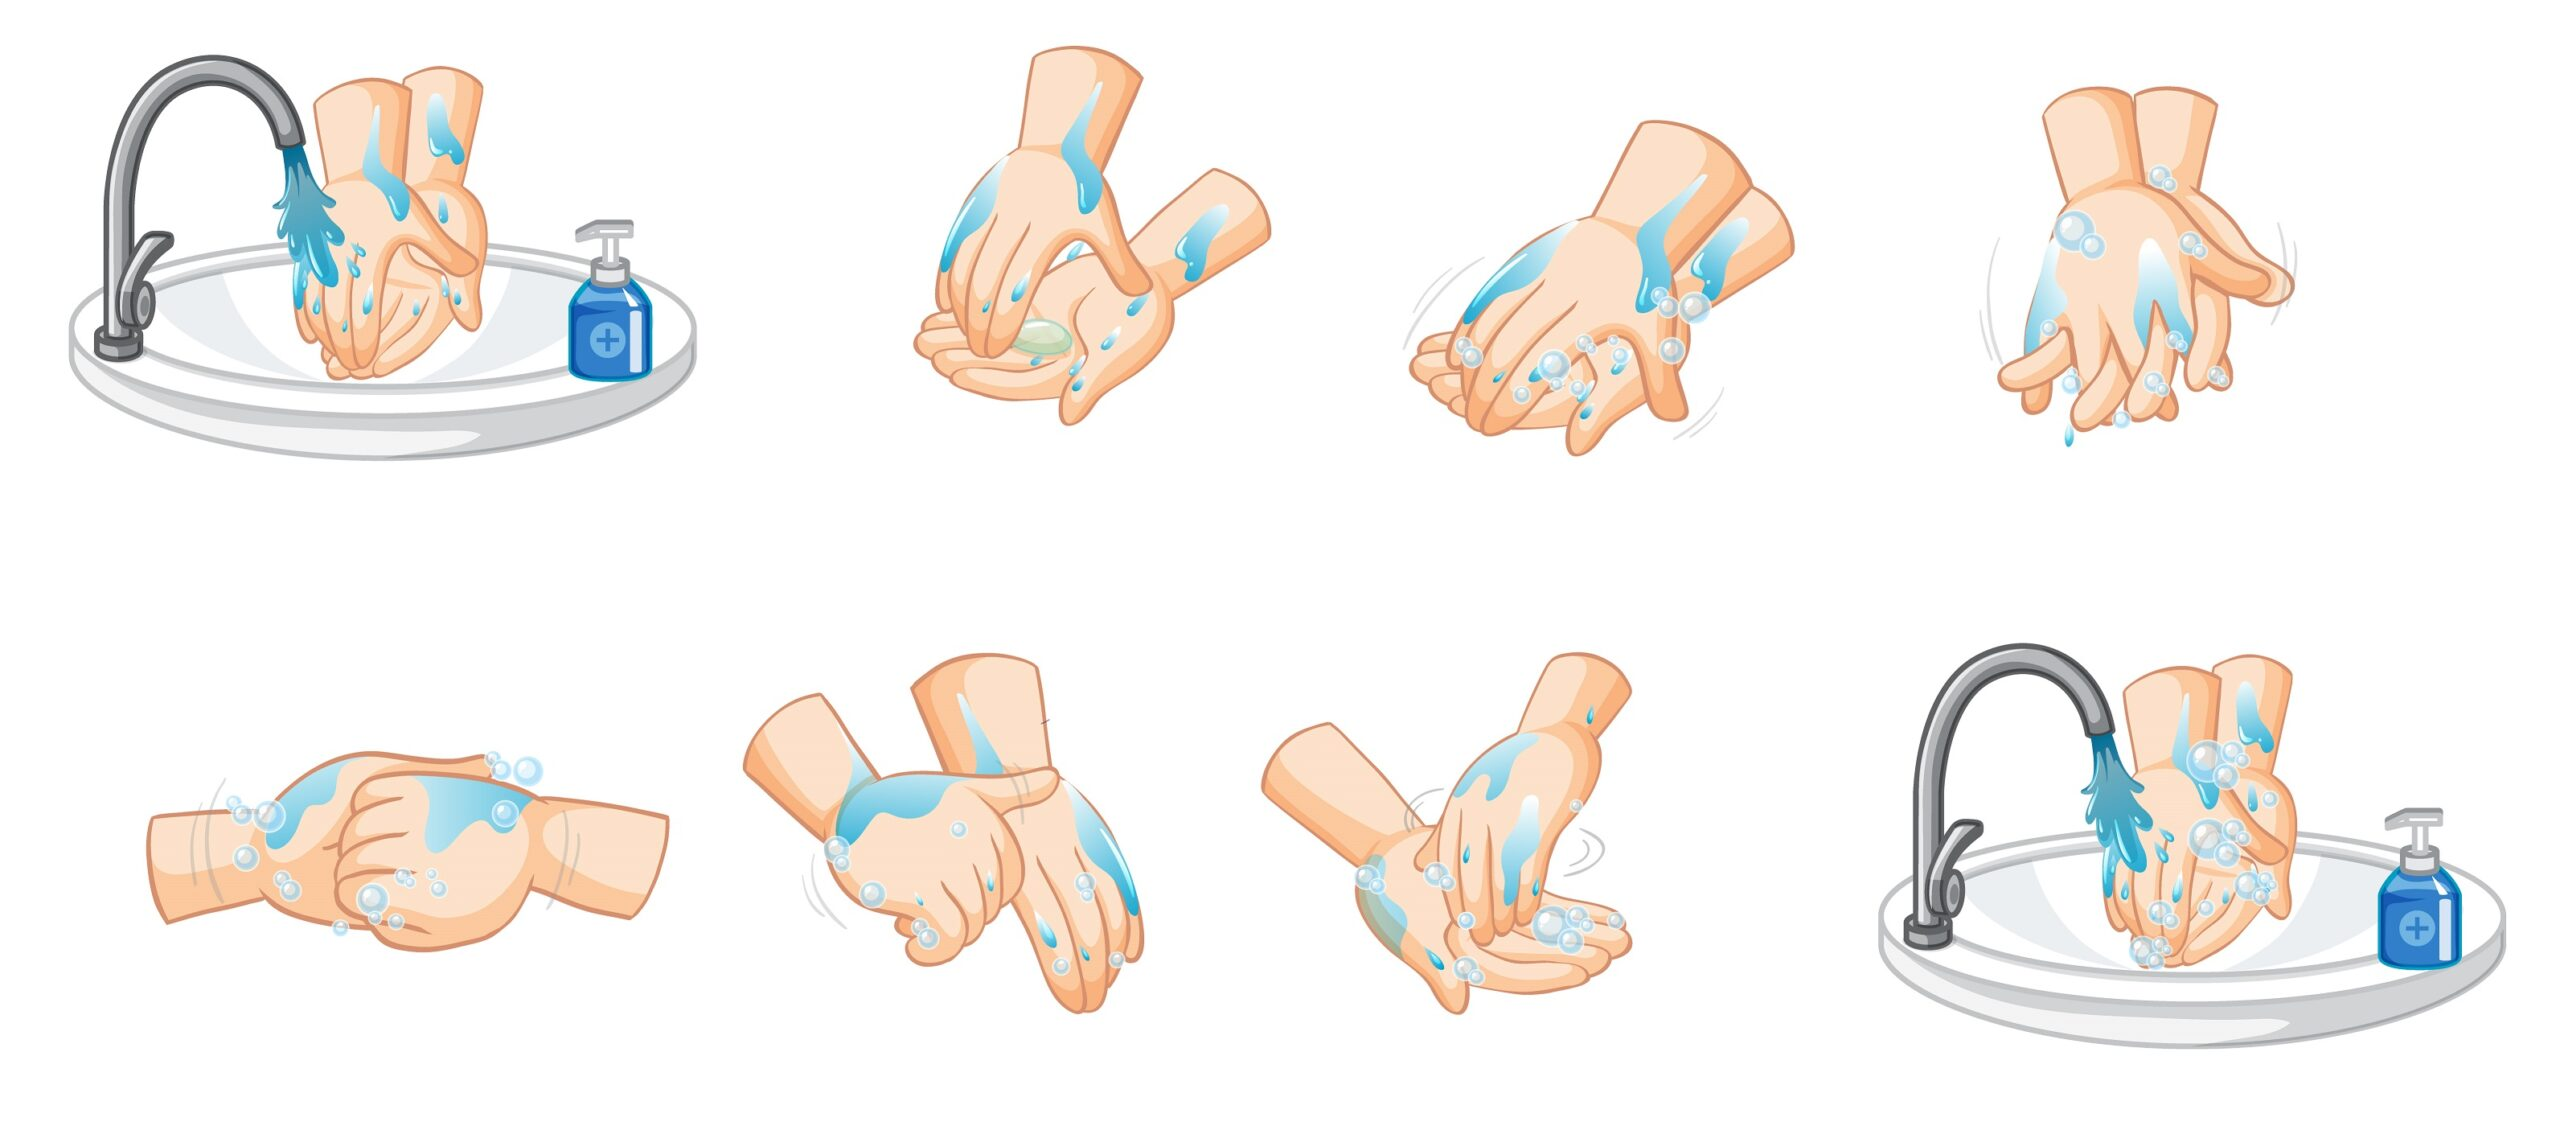 A simple hand washing and hygiene guide